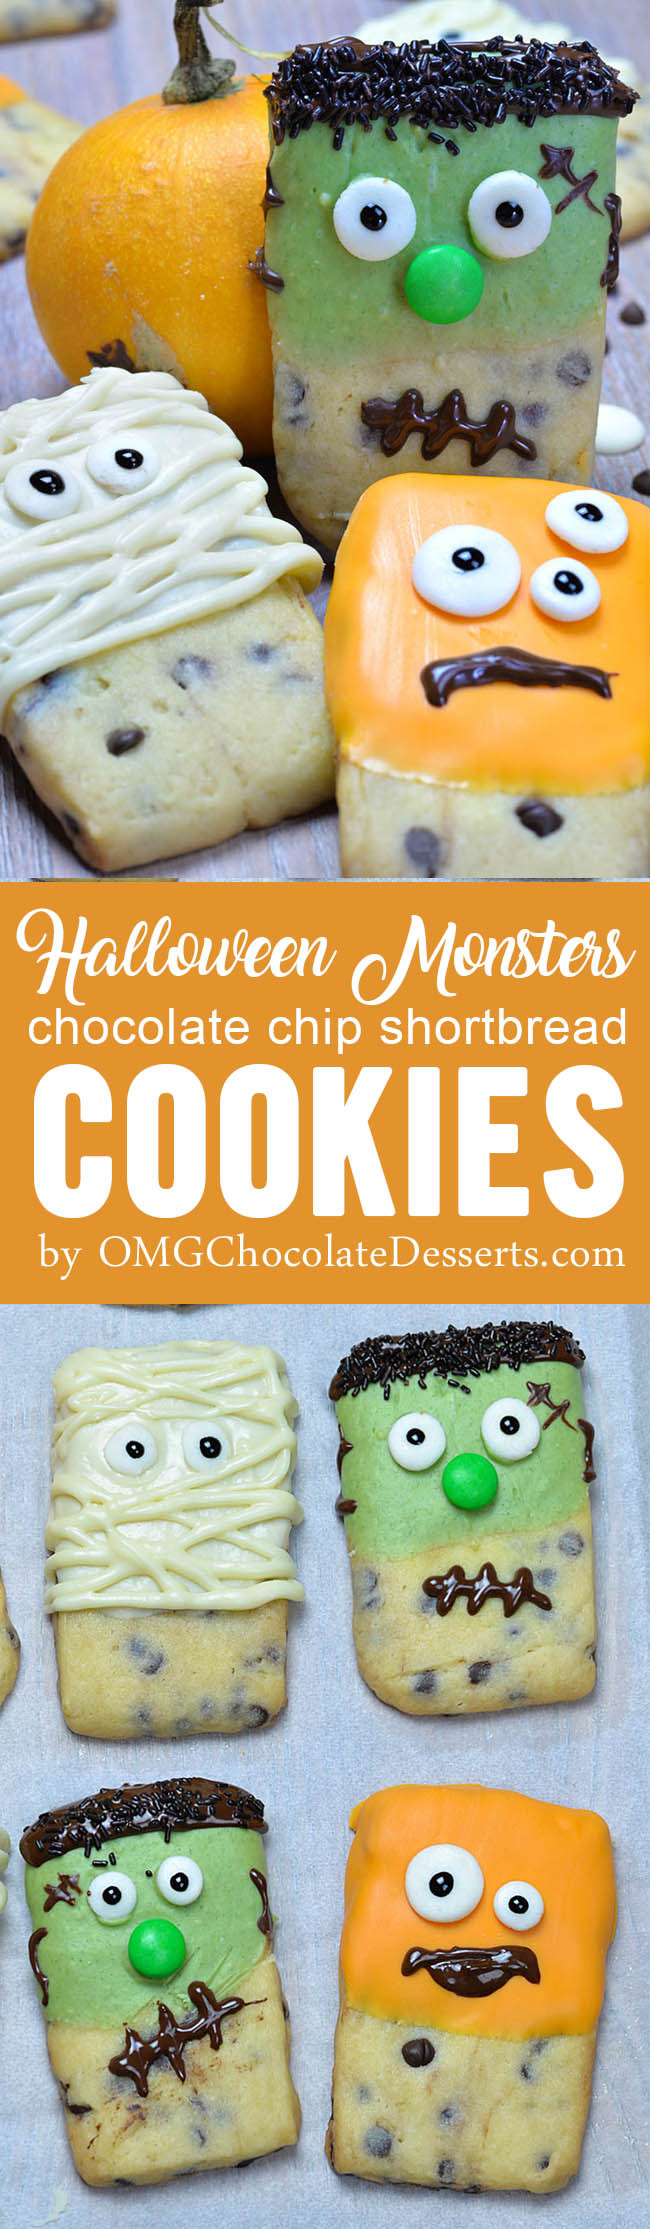 Halloween Shortbread Cookies  Halloween Monsters Shortbread Cookies OMG Chocolate Desserts